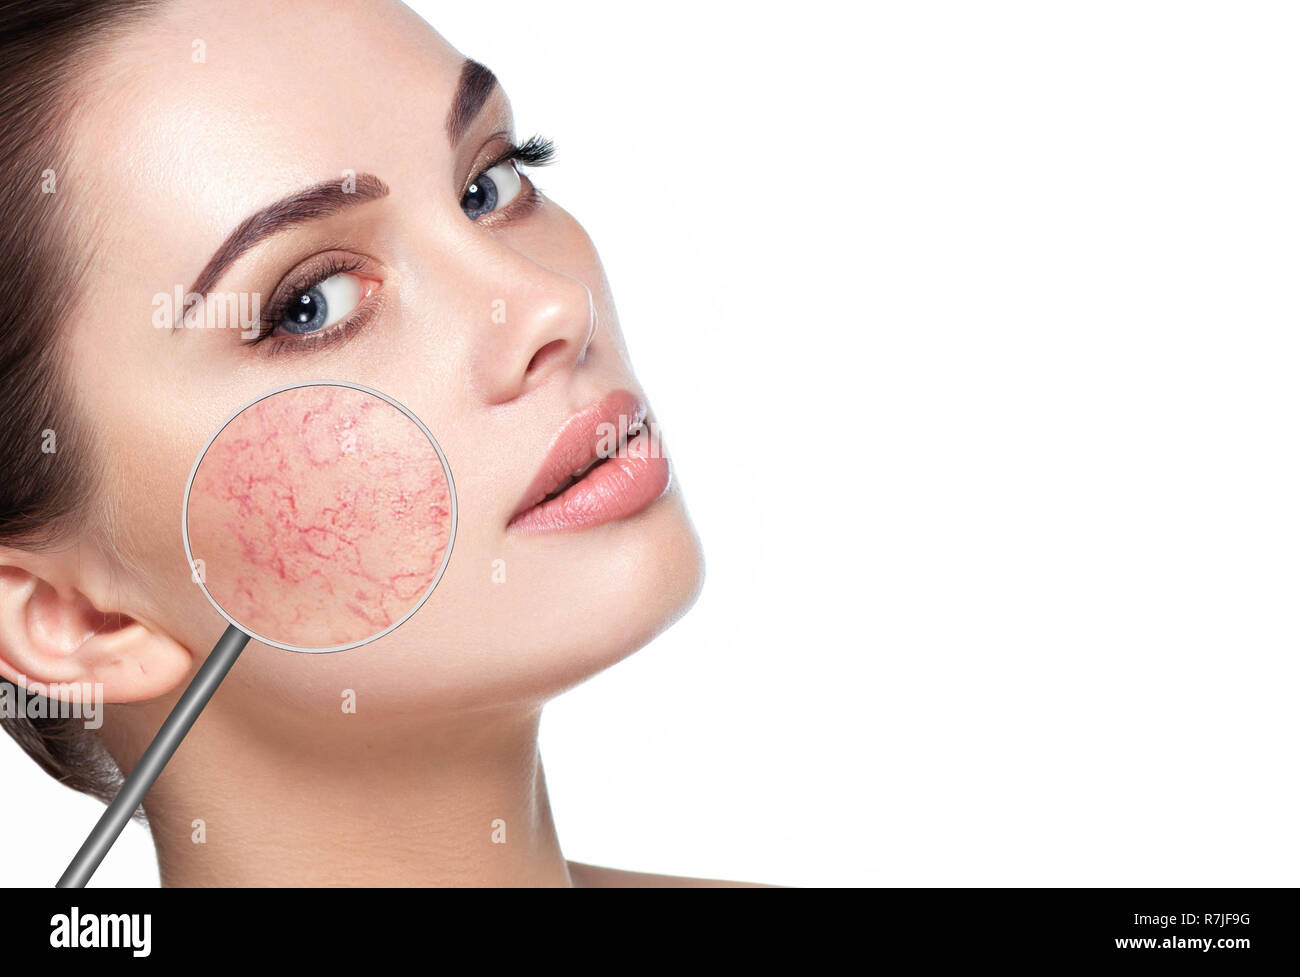 magnifying glass showing couperose on womans face - Stock Image